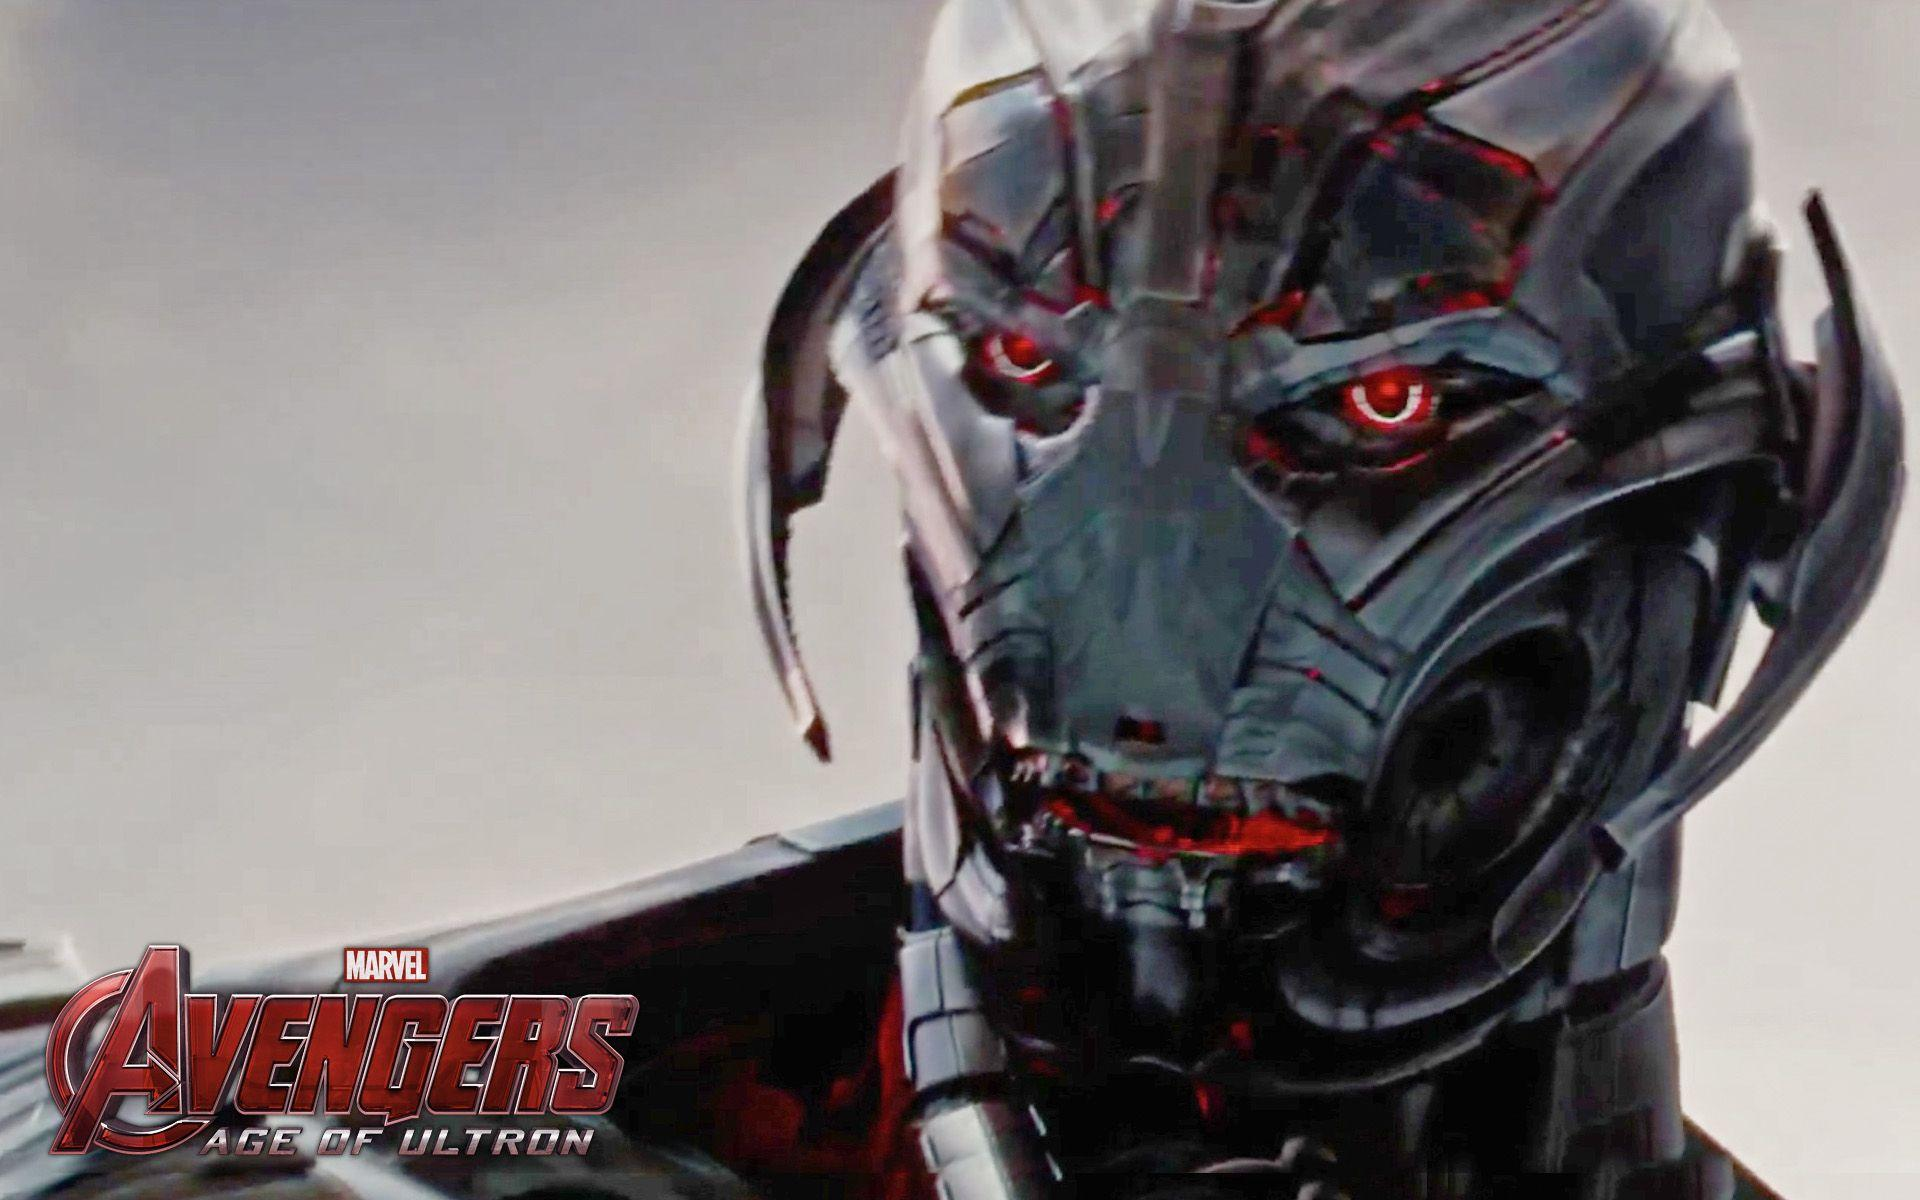 Avengers Age Of Ultron Wallpapers Hd 1080p